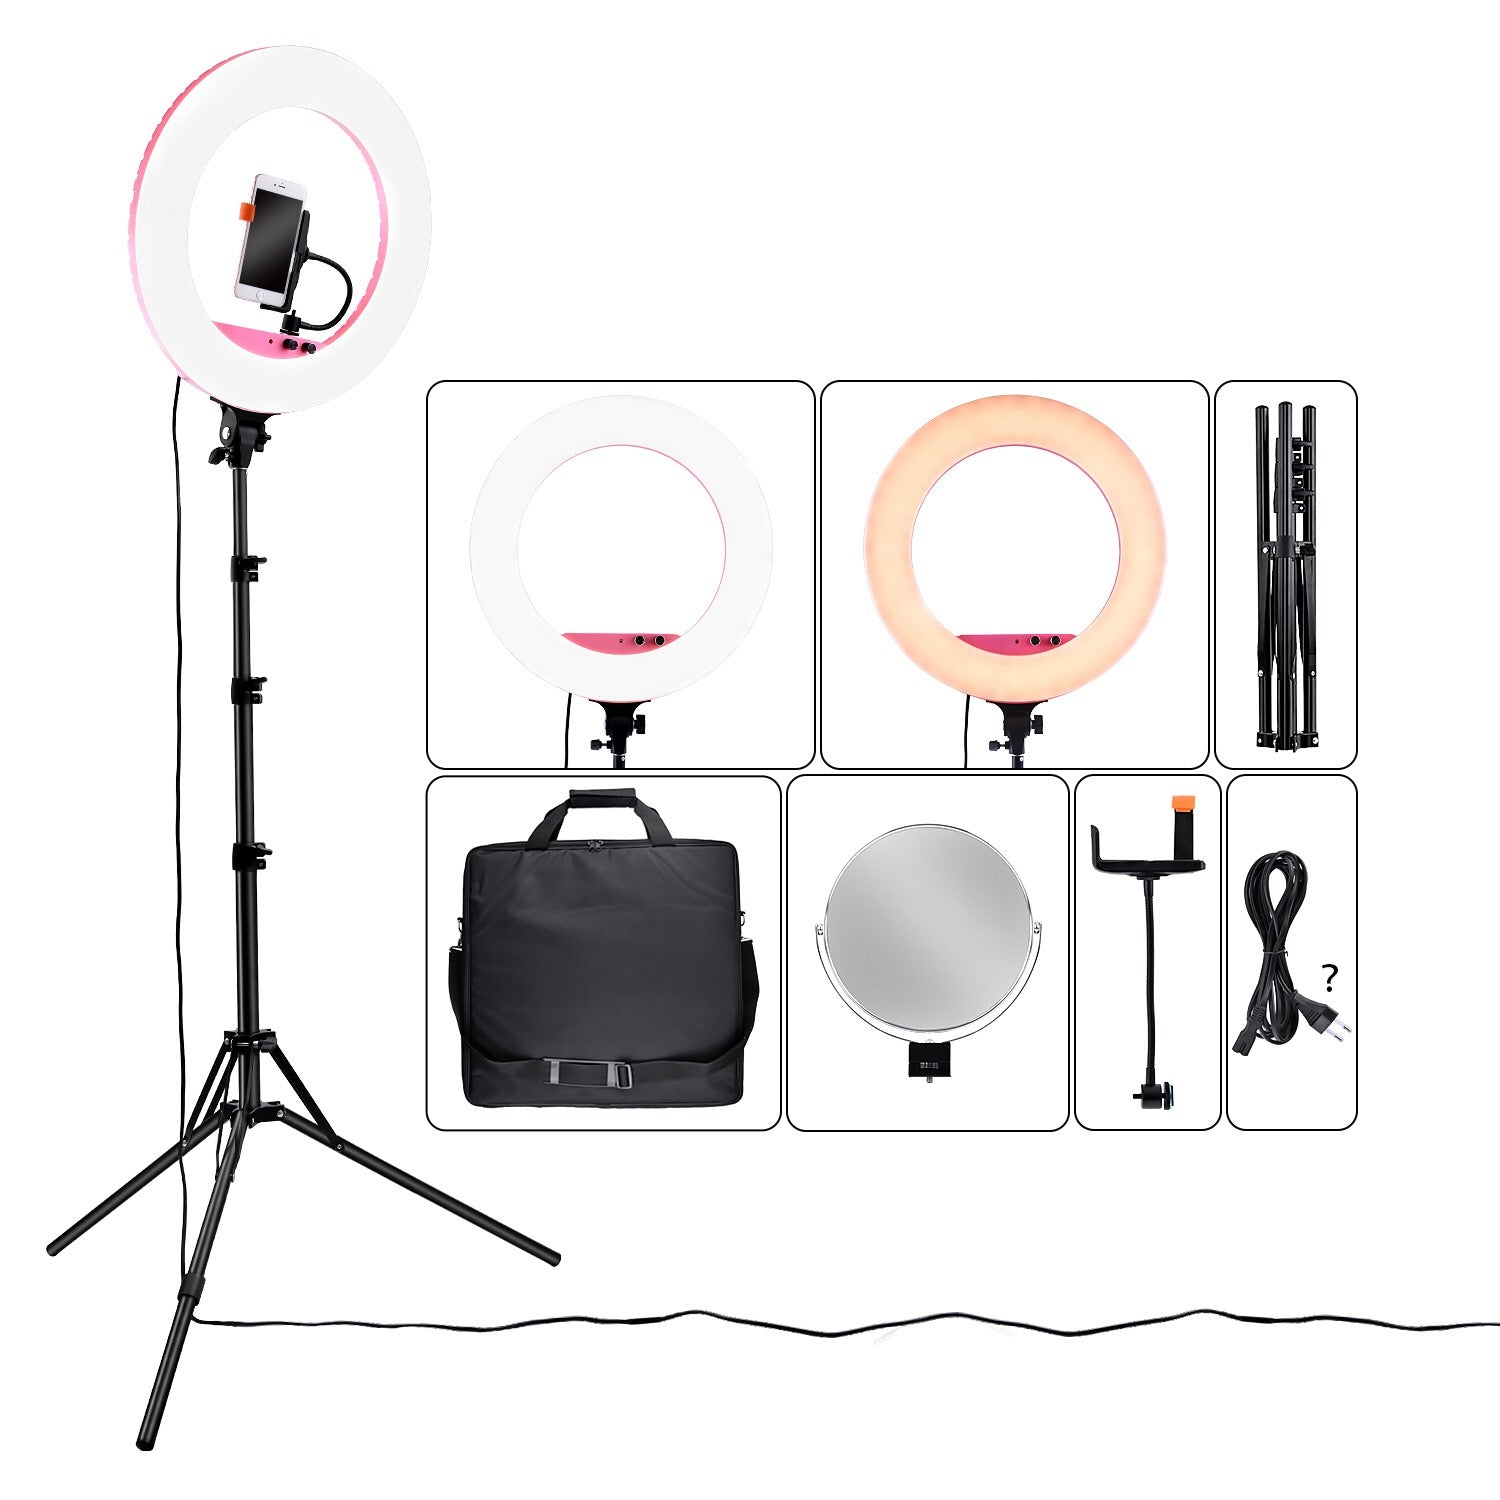 Dimmable LED Vanity Studio Ring Light 22 Inches With Remote Control